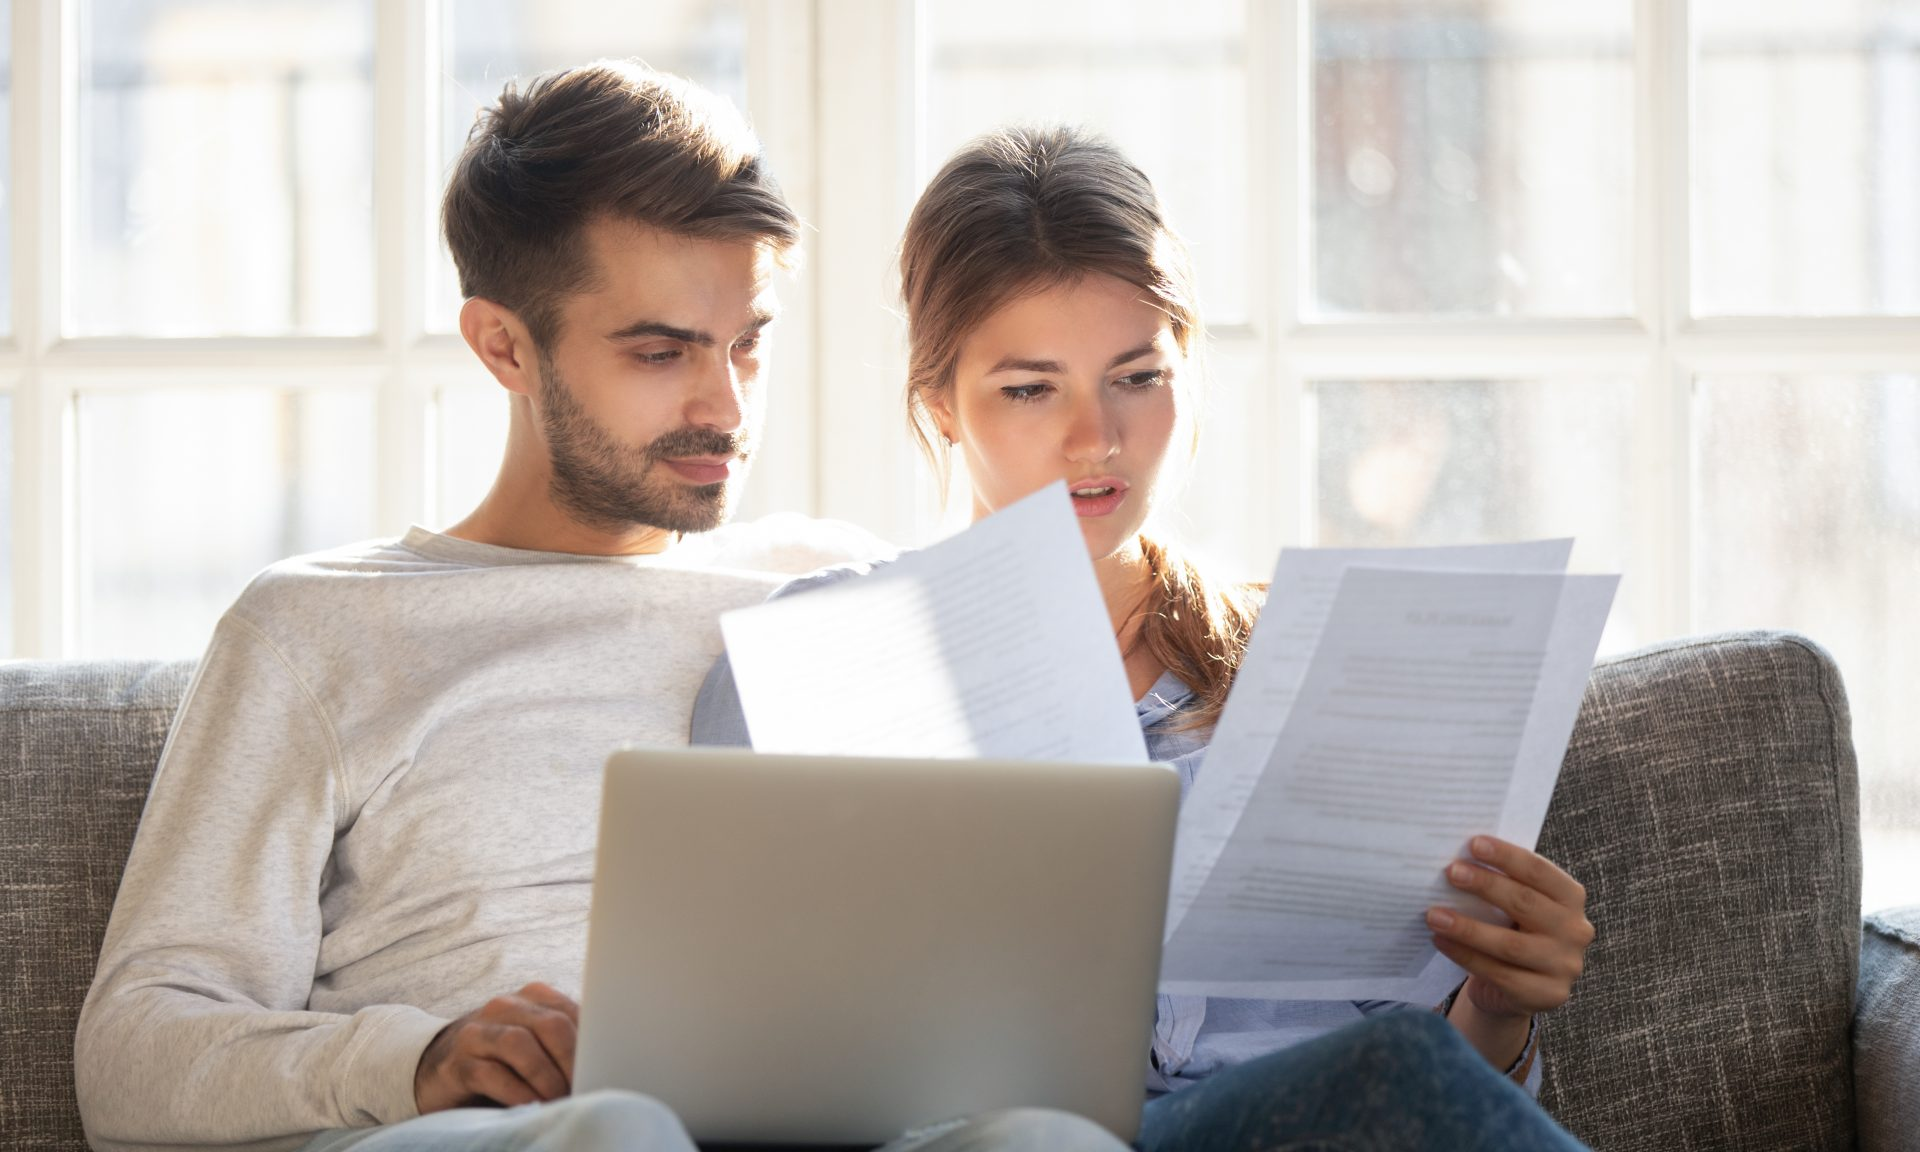 What to Do With Bad Credit Due to Unexpected Events